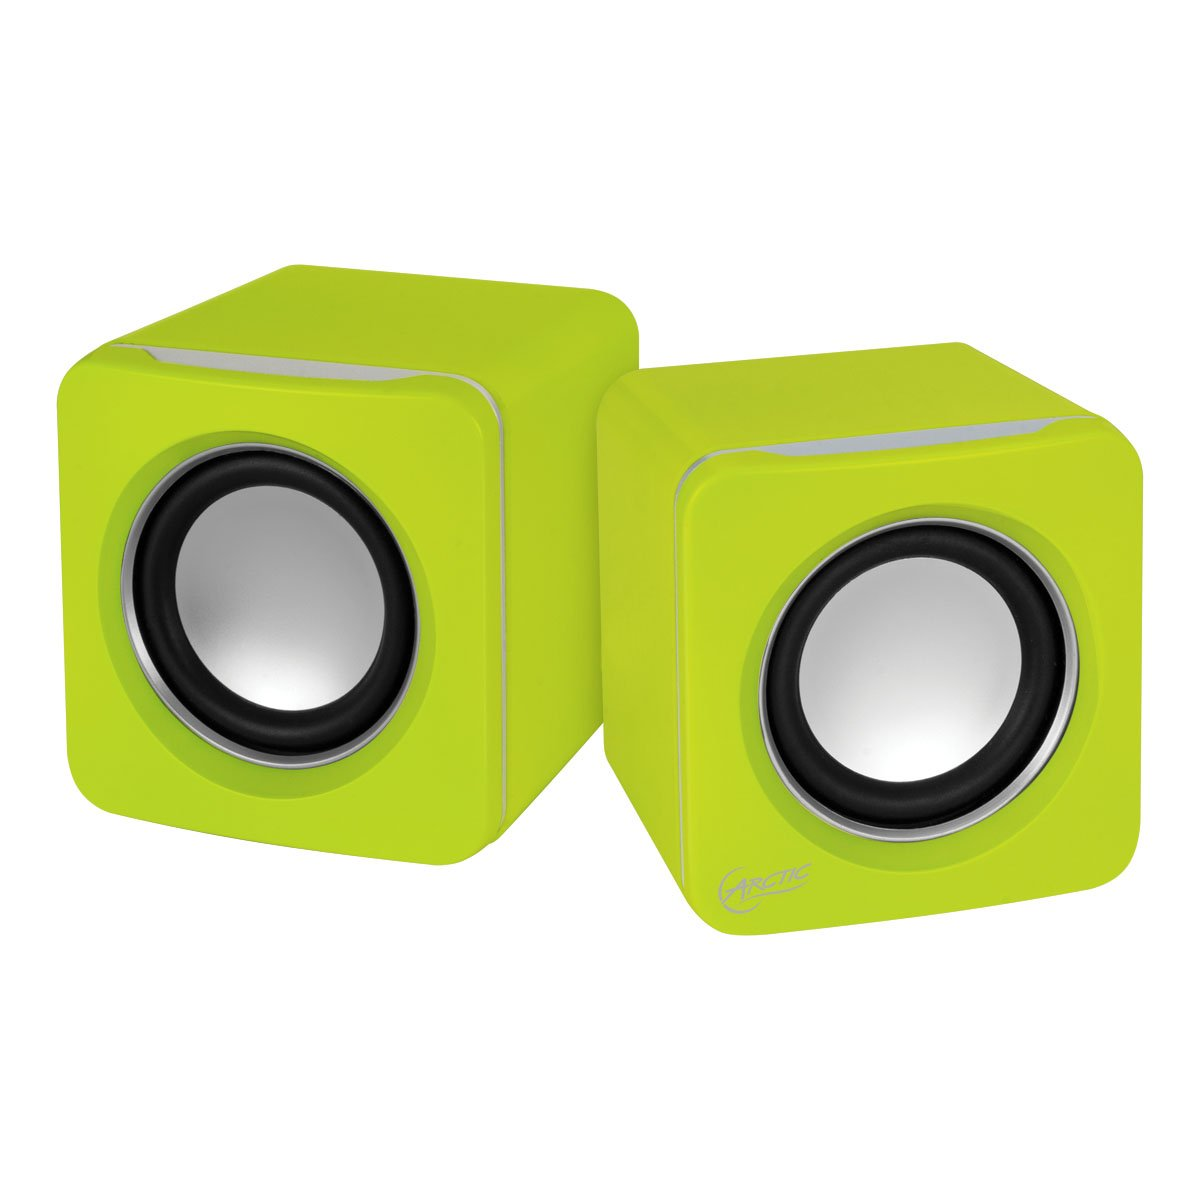 Arctic S111 - Altavoces para PC (USB, 2.0, 3.5 mm) color amarillo S111-Lime